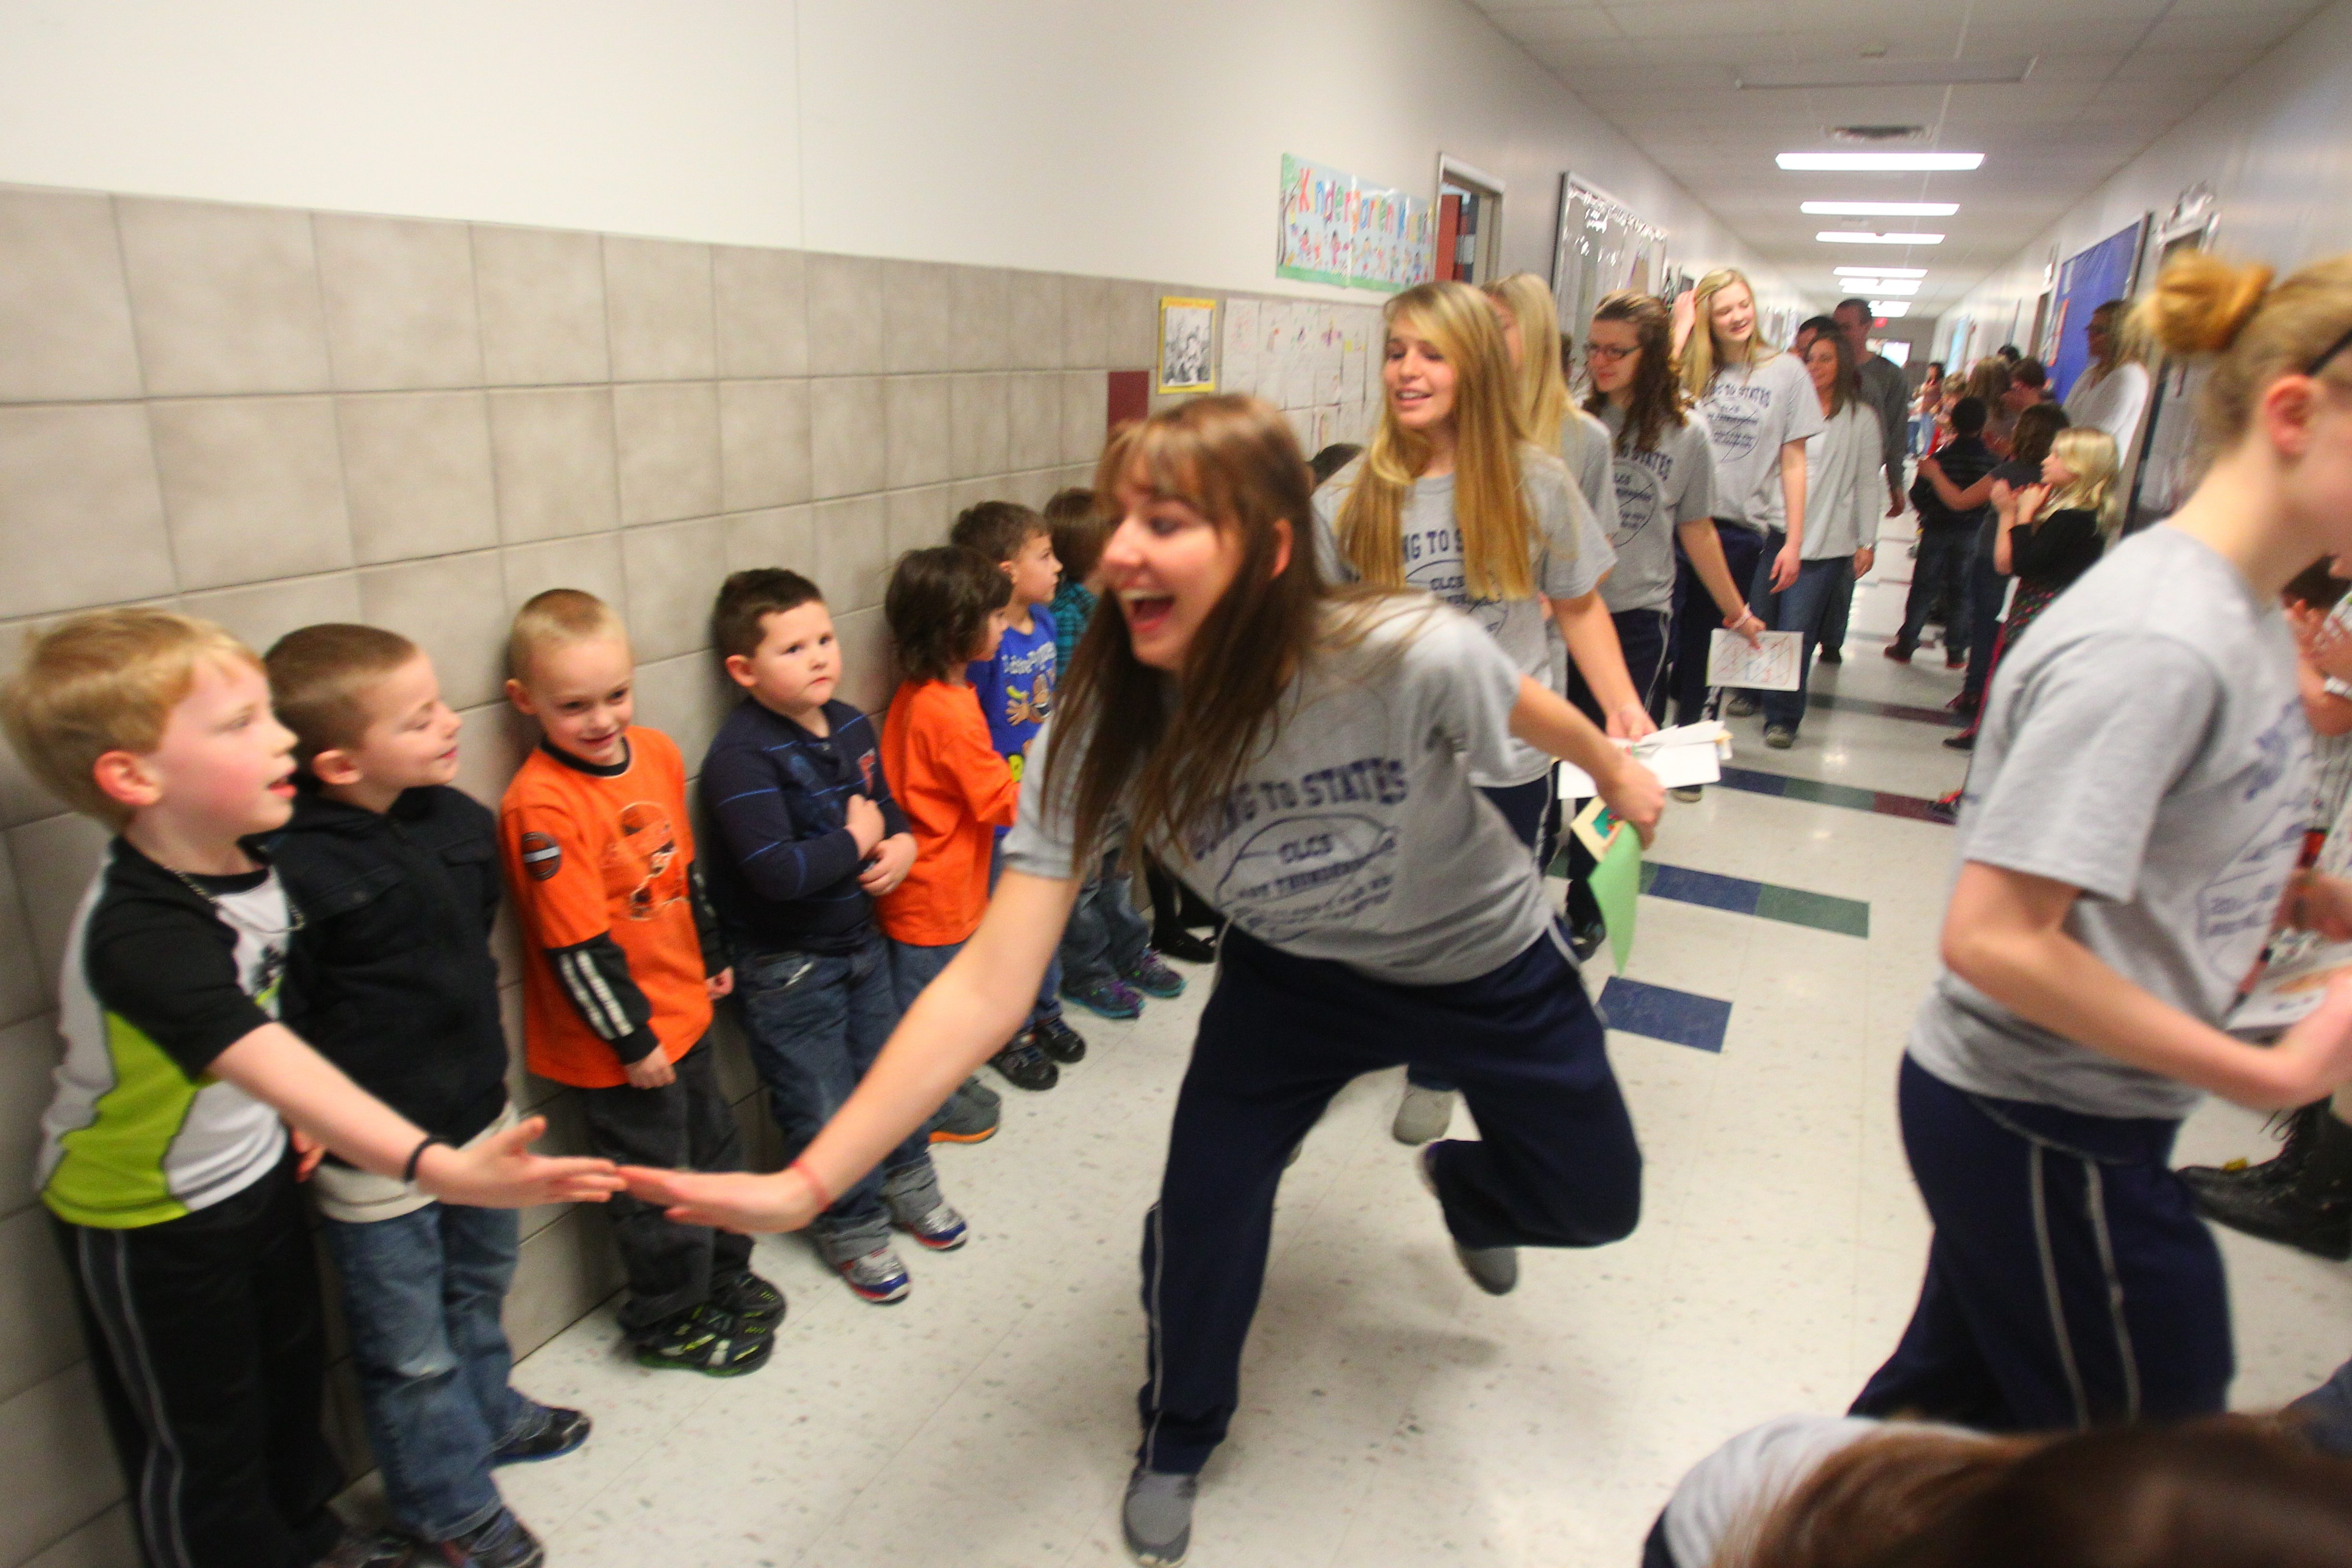 Ashley Moulton of the Chautauqua Lake basketball team slaps hands with a young well-wisher after a pep rally on Friday at the school.